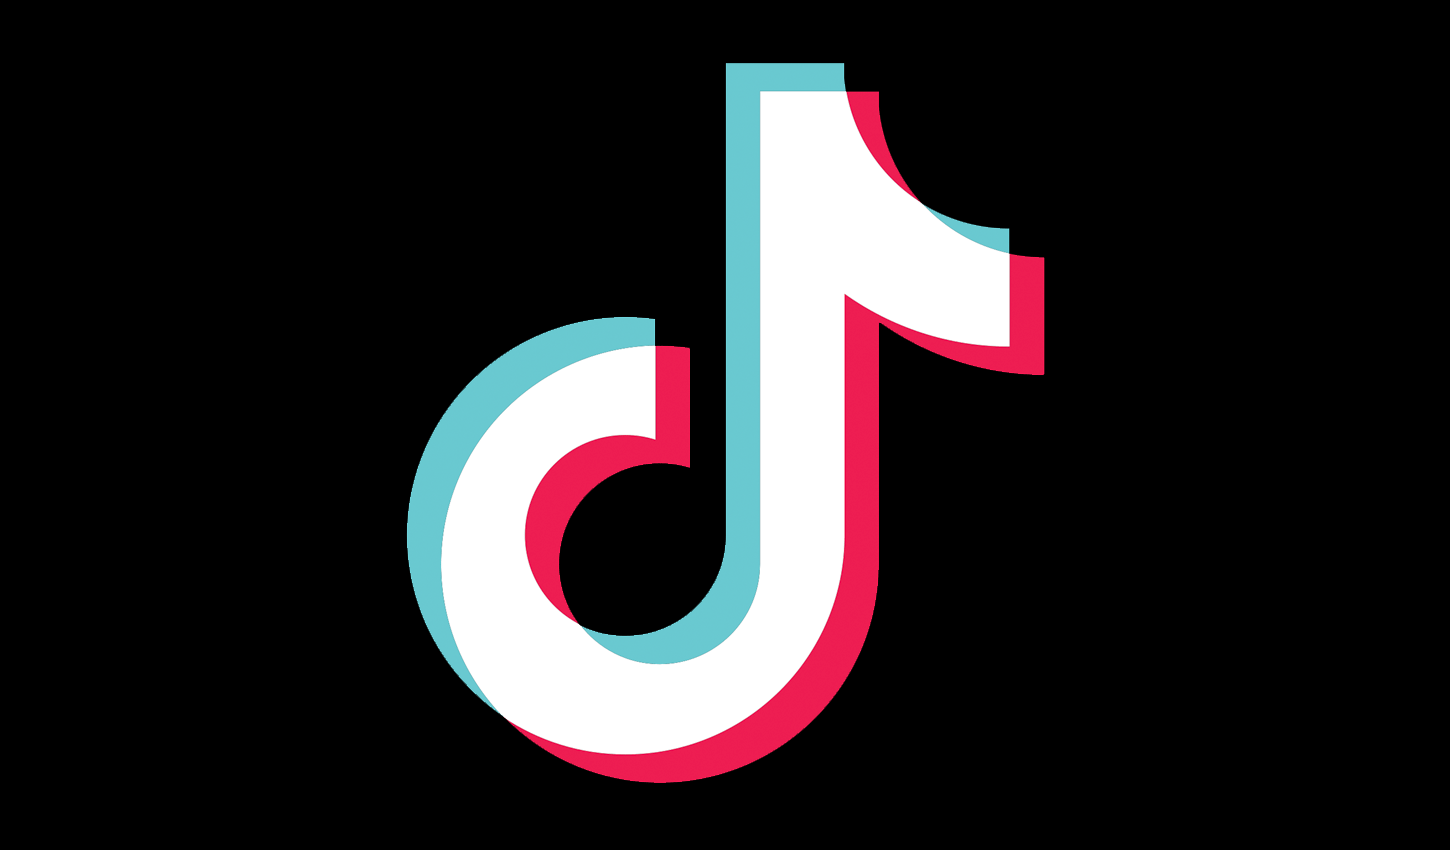 Facebook has lost the title of the second most popular application in the world of TikTok